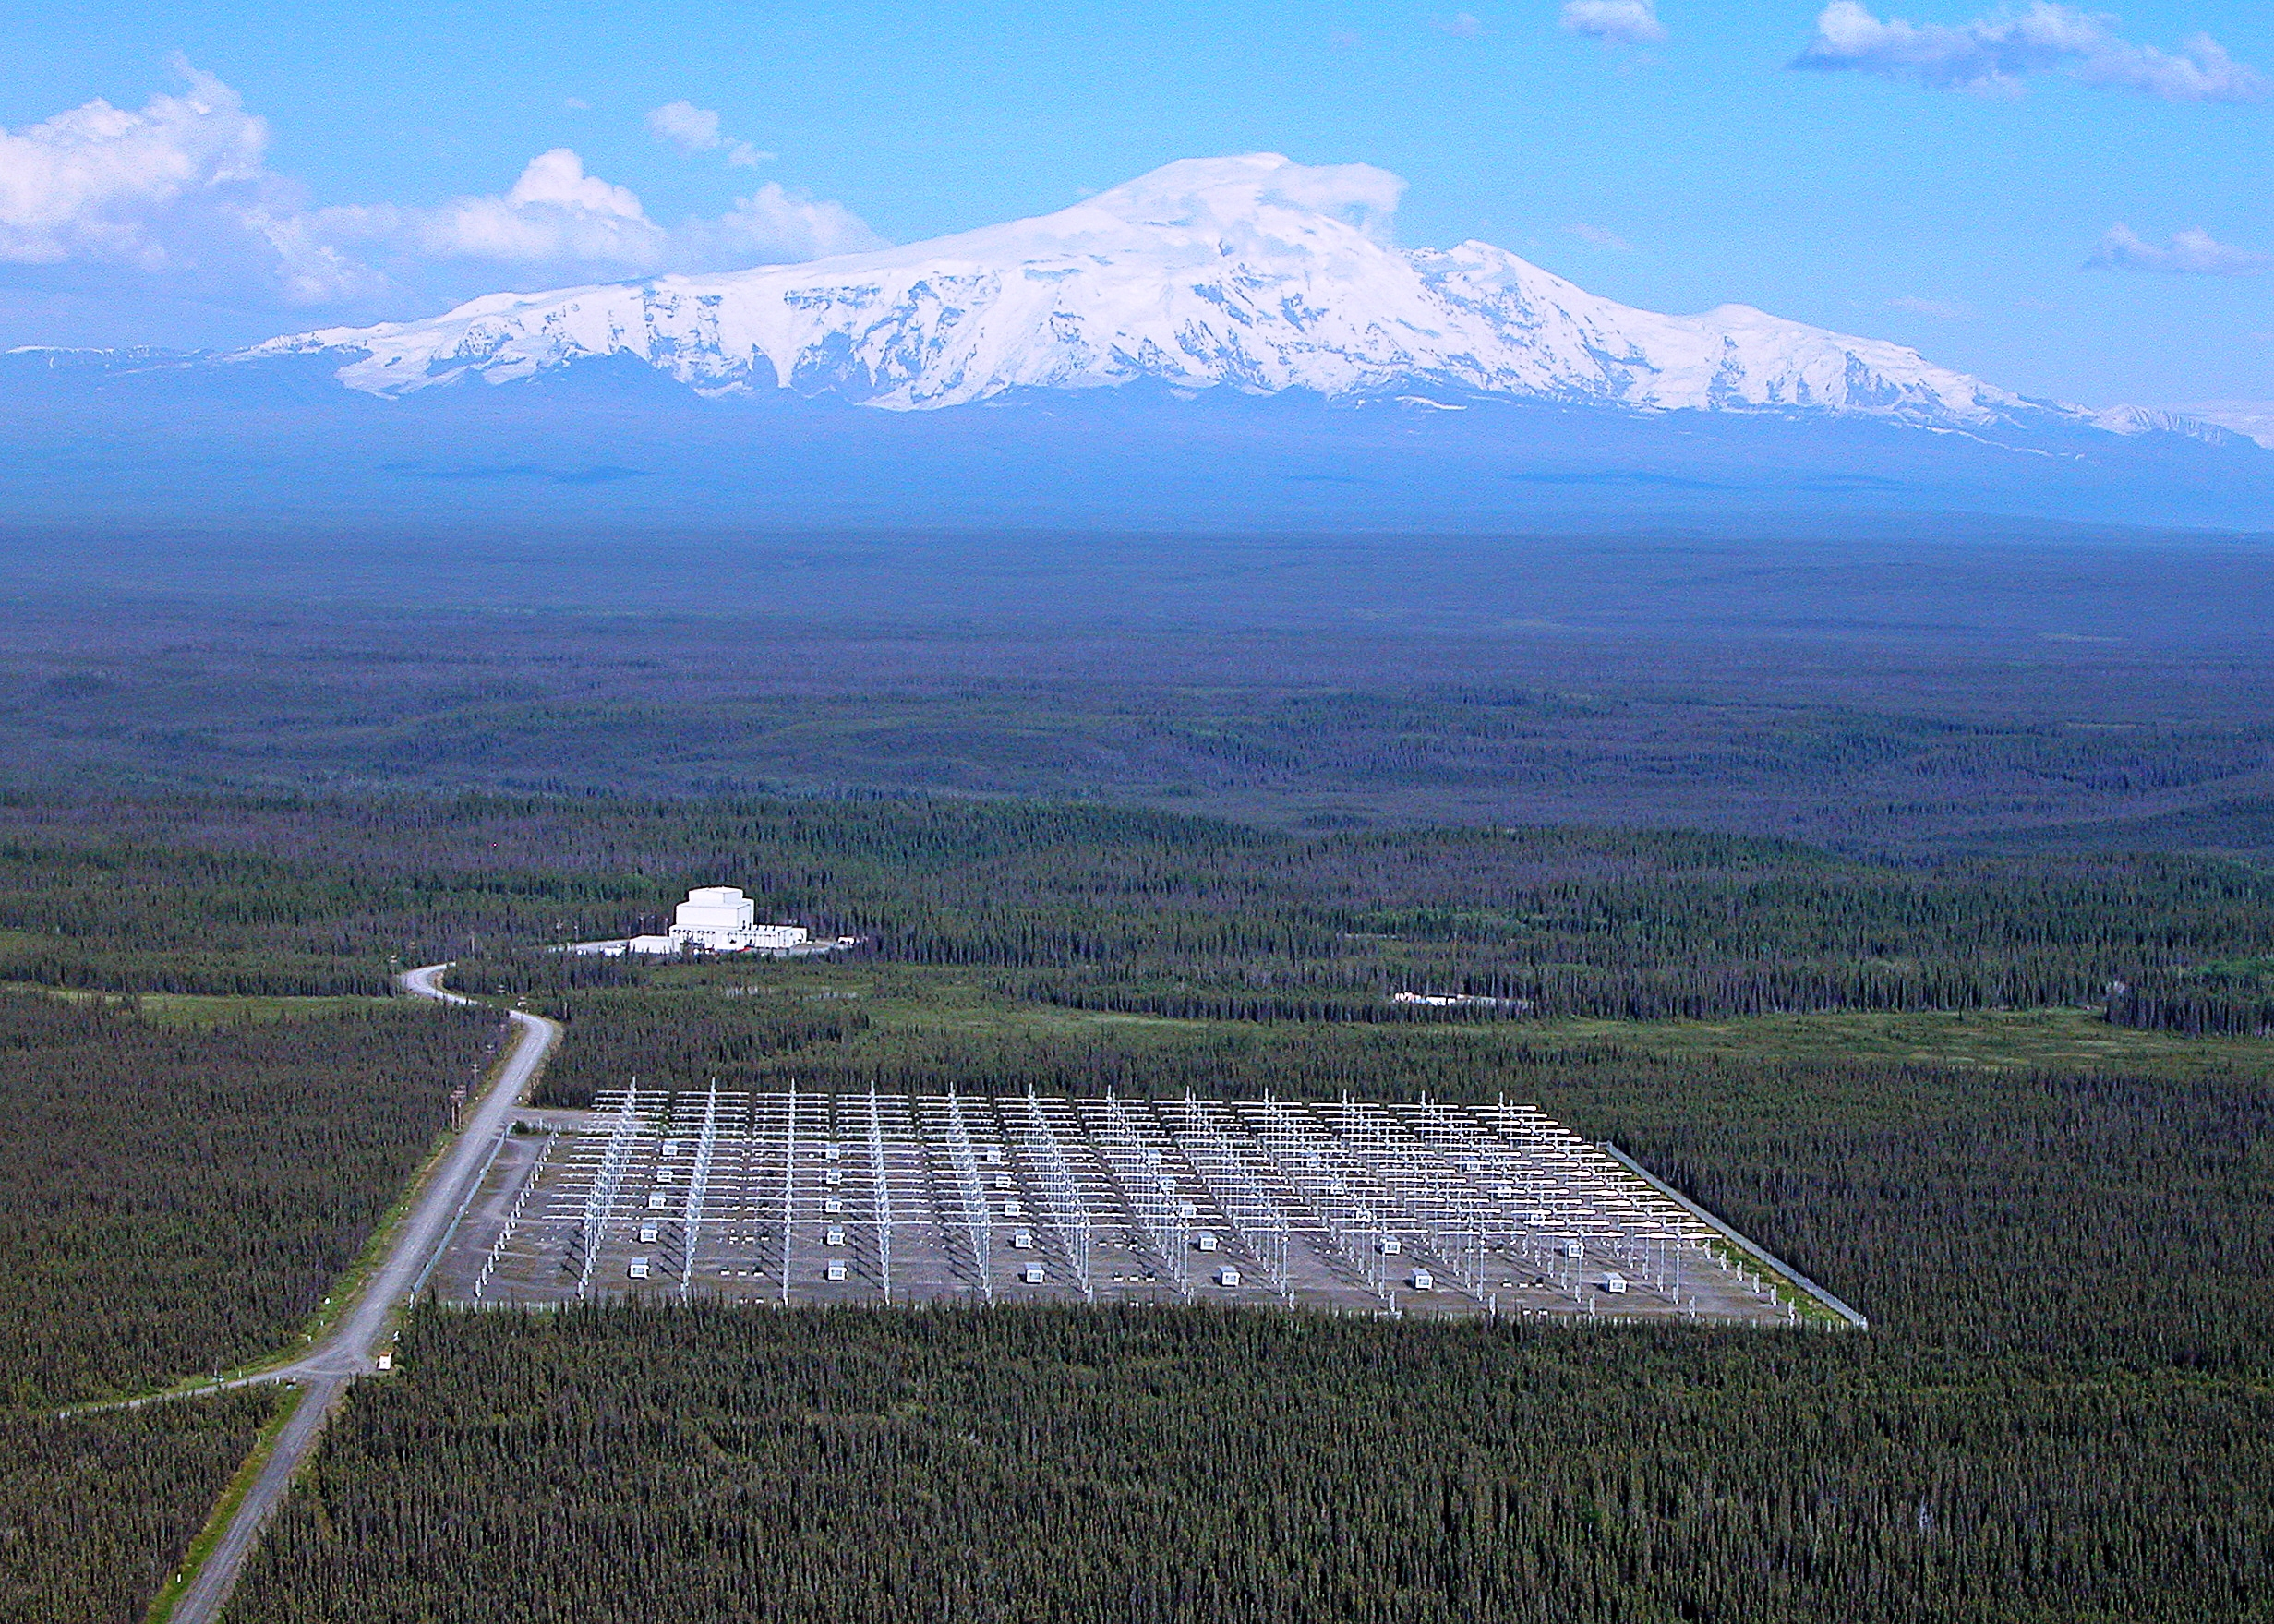 High Frequency Active Auroral Research Program, United States